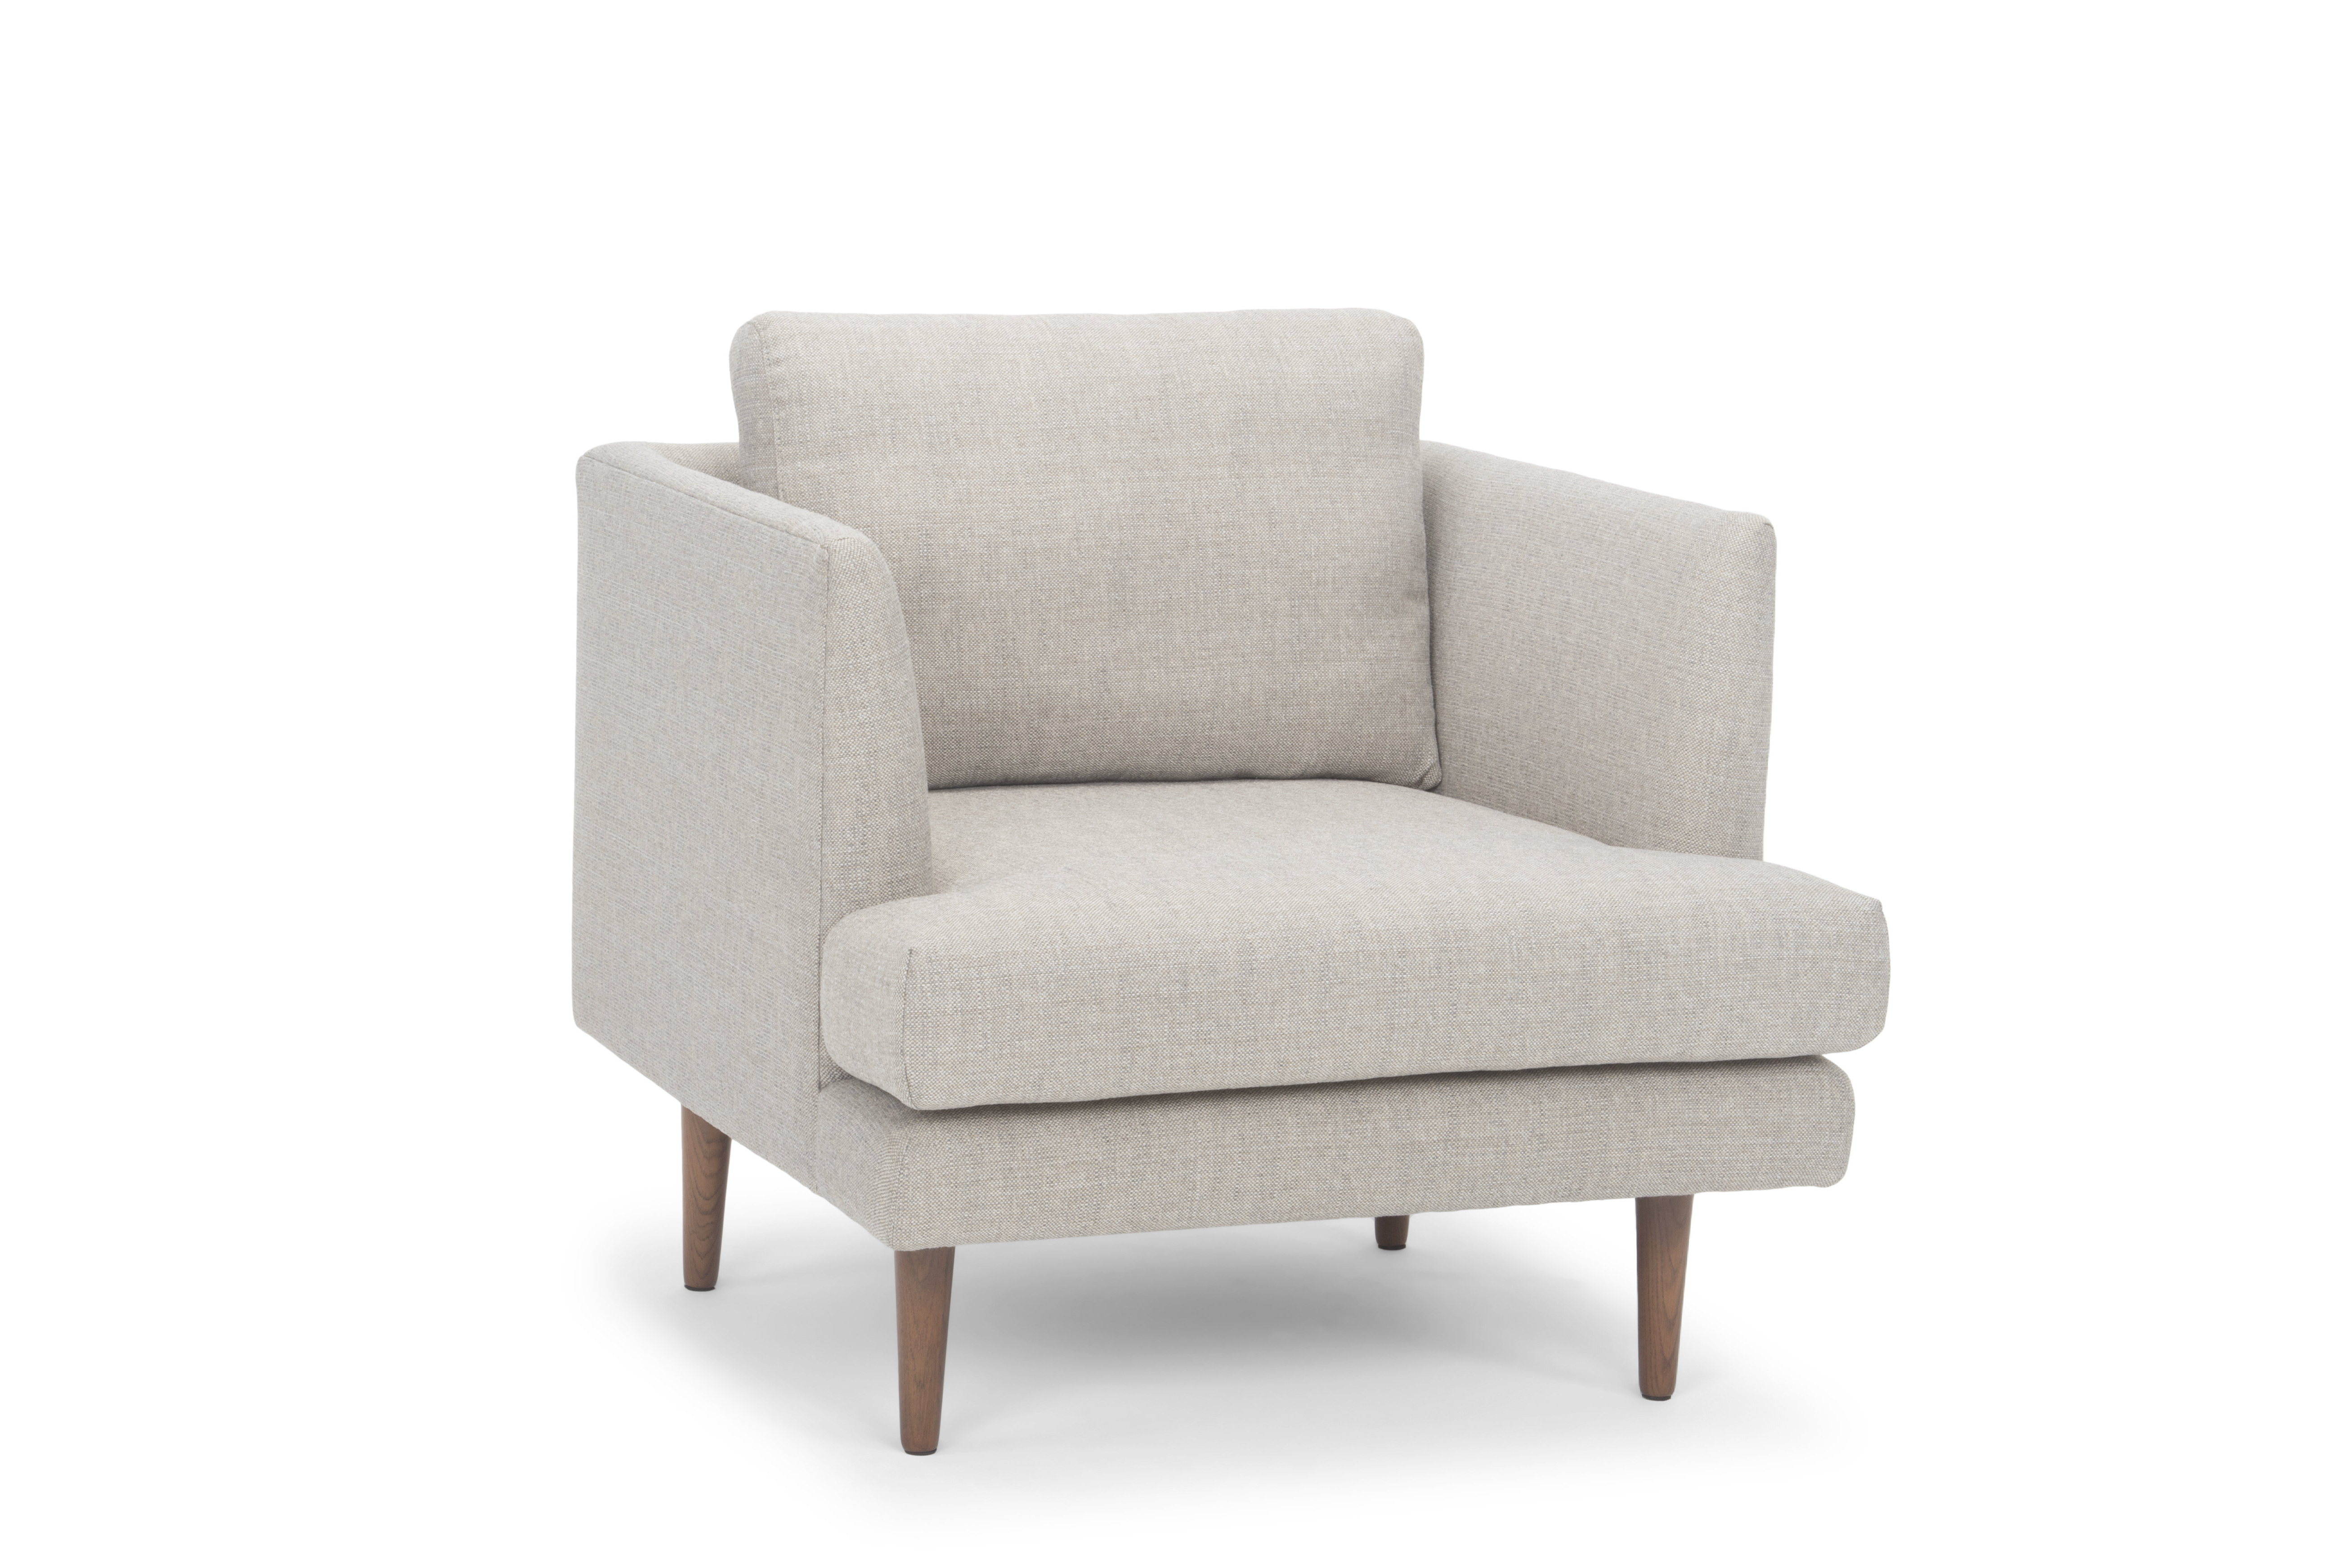 Katrina Beige Swivel Glider Chairs Within Most Recent Octavio Armchair & Reviews (View 10 of 20)